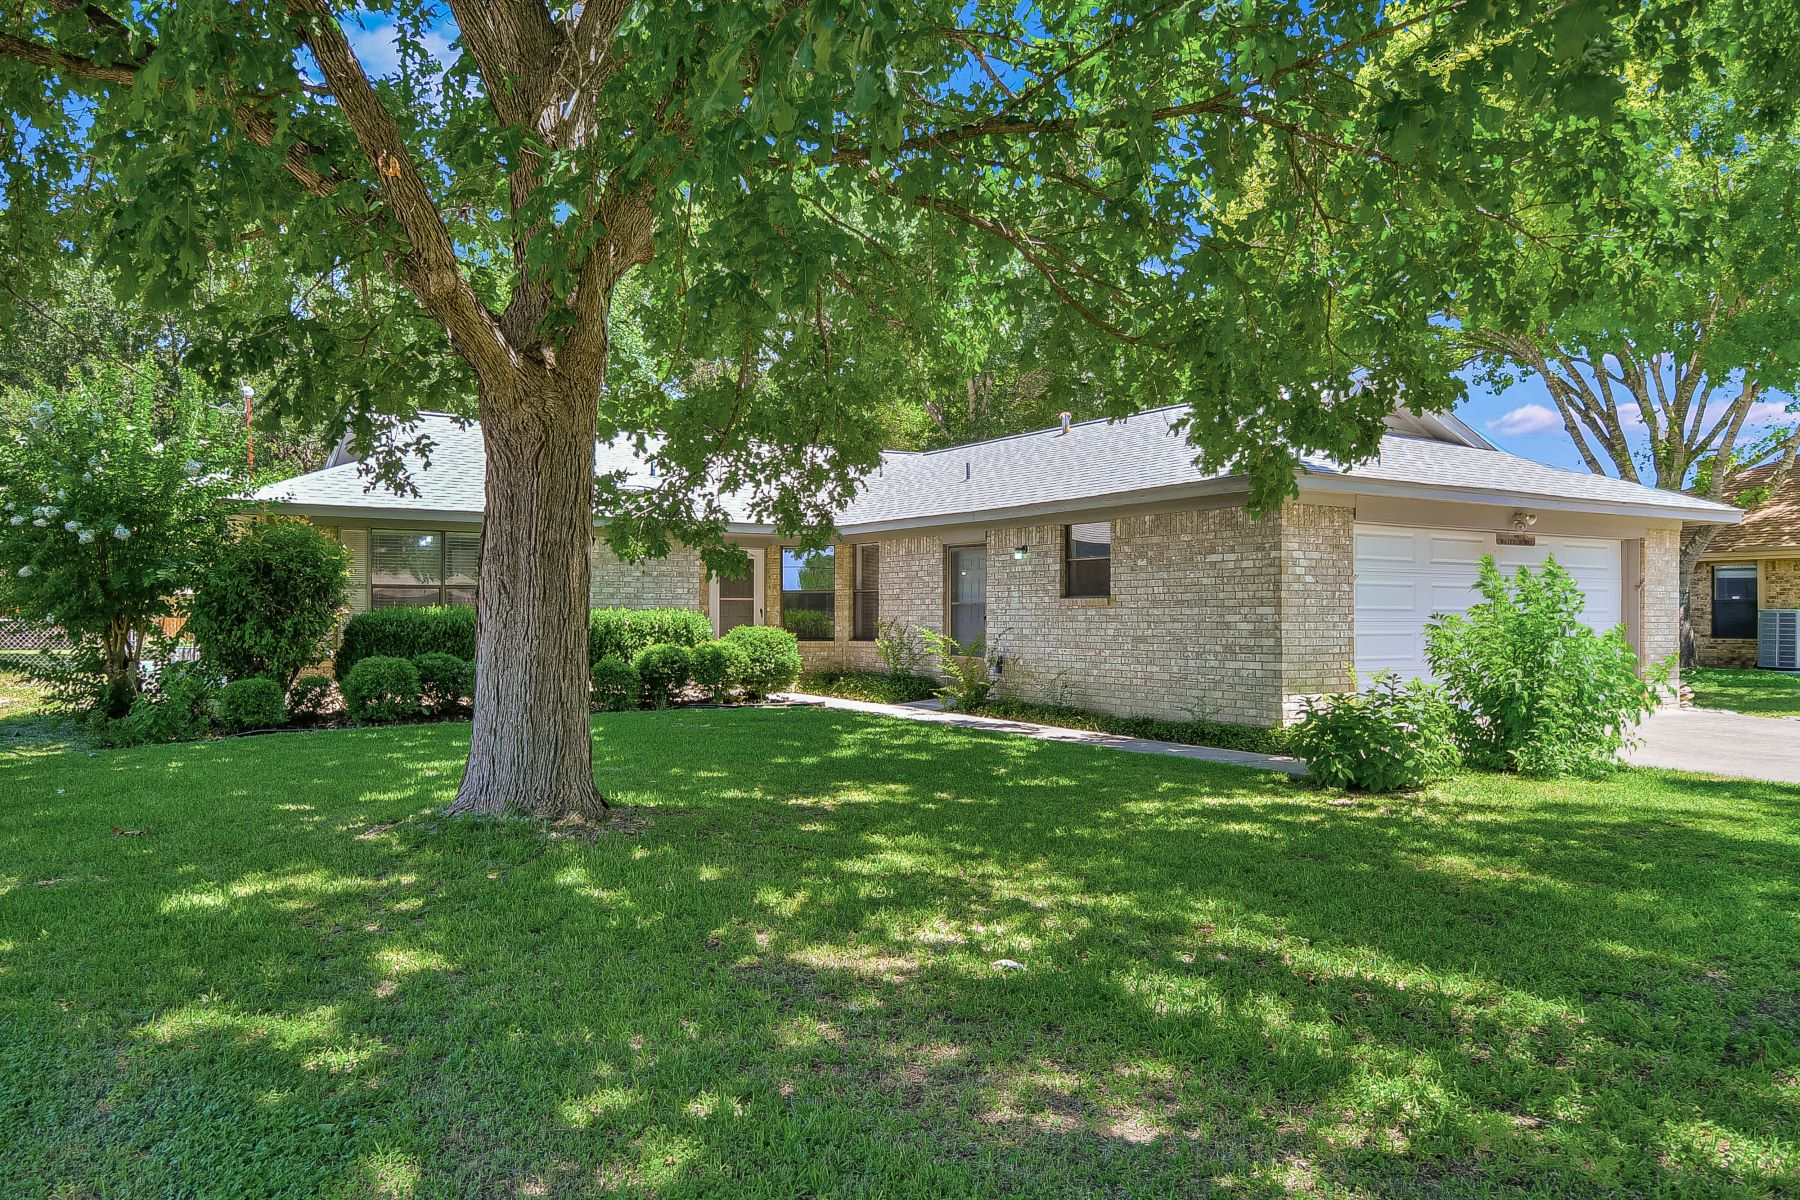 Single Family Homes for Sale at Beautiful Brick Home on Quiet Cul-de-sac 914 Water Spray Lane New Braunfels, Texas 78130 United States